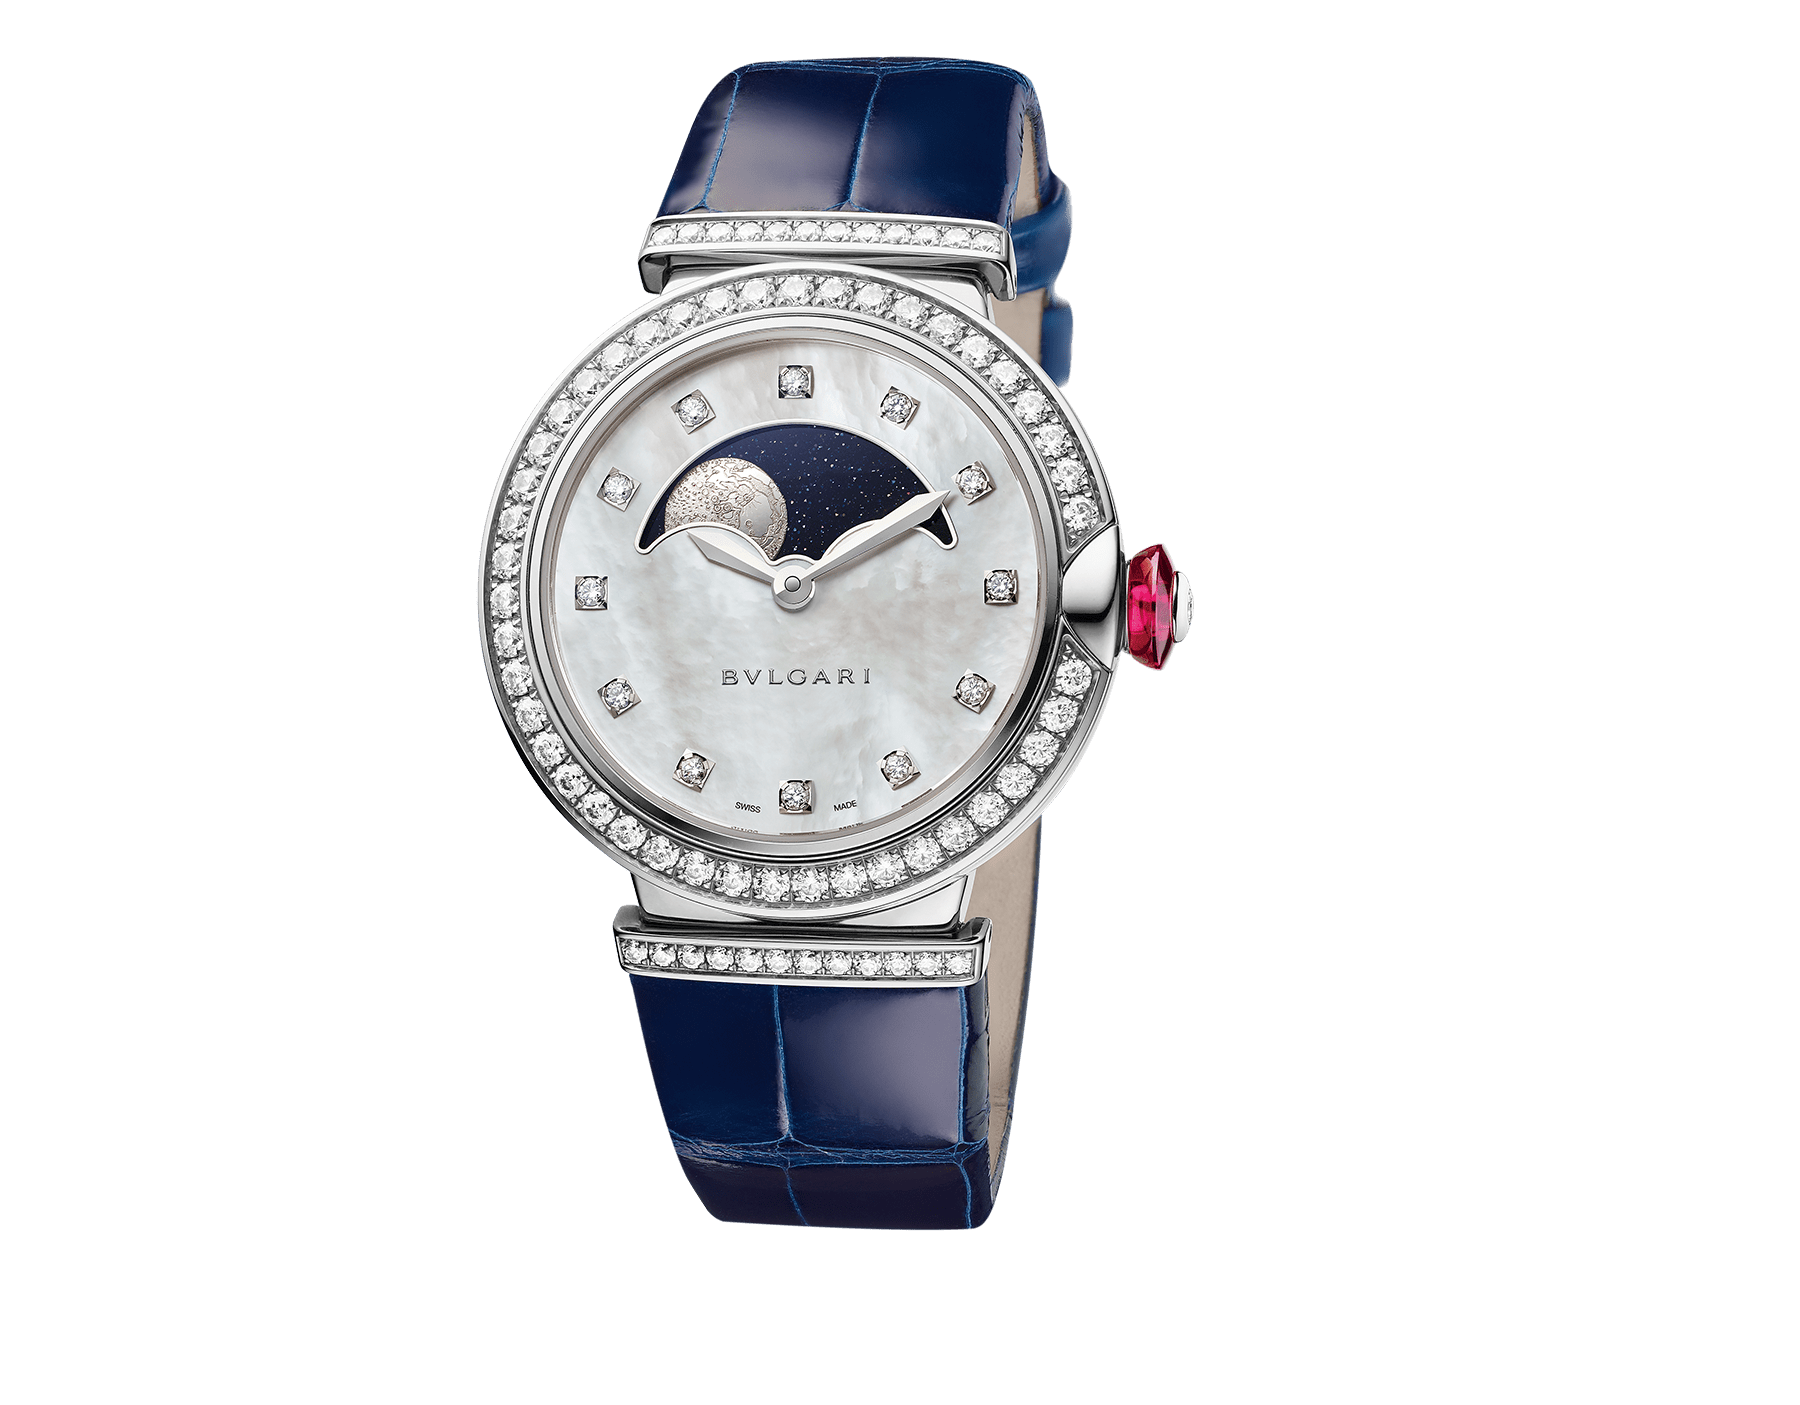 LVCEA Moon phase watch with 18 kt white gold case set with diamonds, mother-of-pearl and aventurine dial, blue alligator bracelet. 102687 image 1